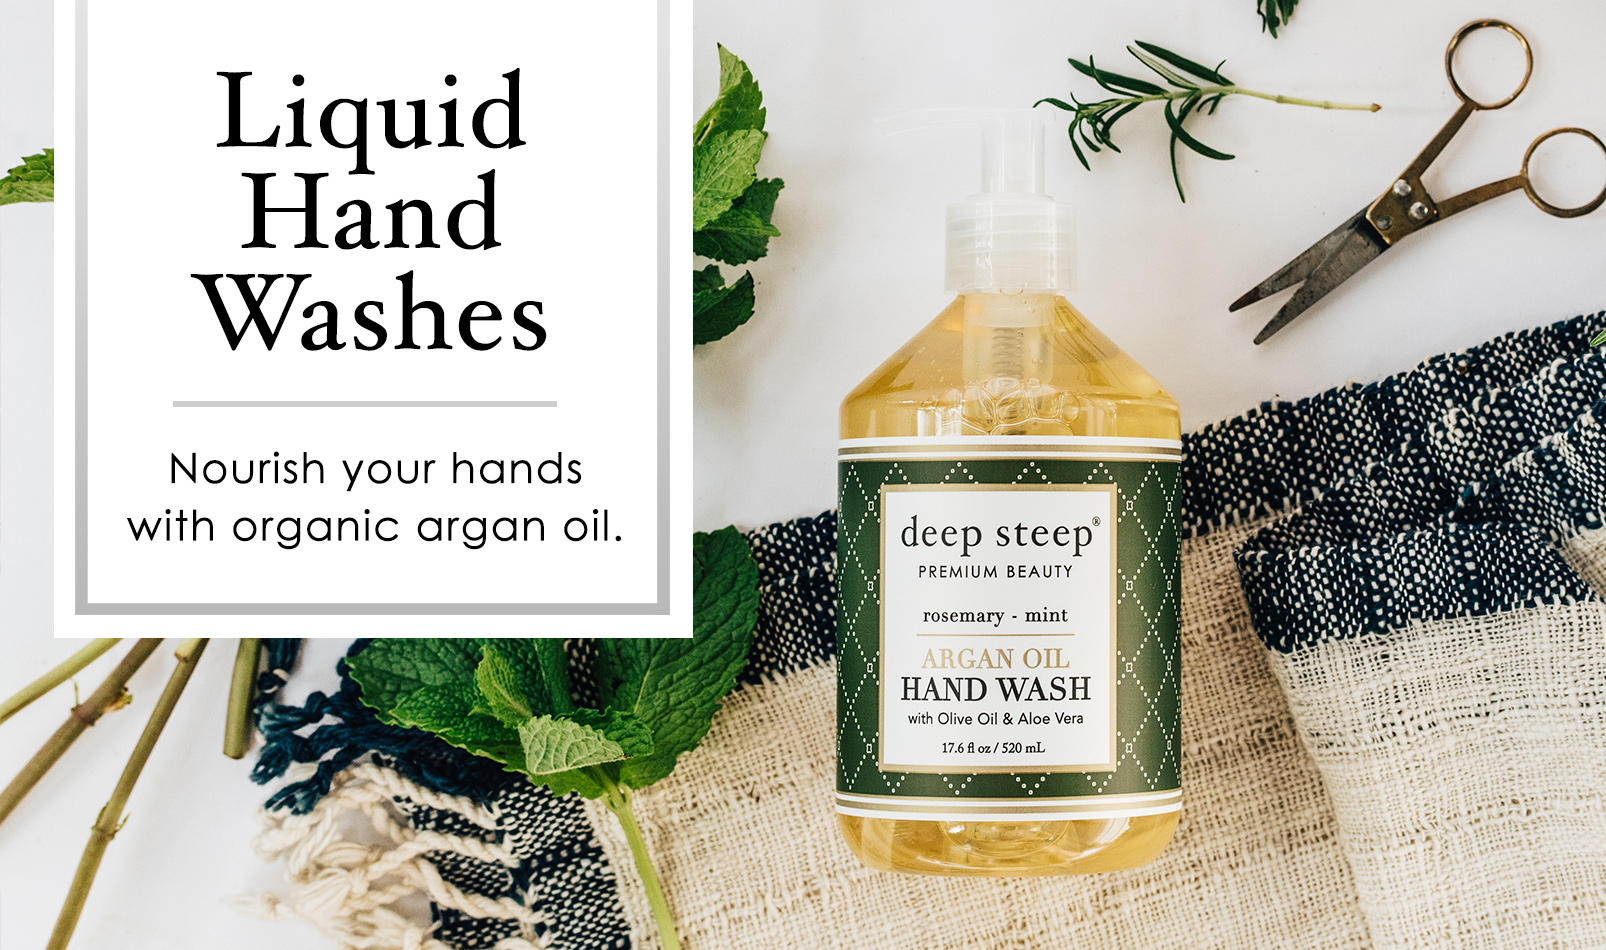 Liquid Hand Washes